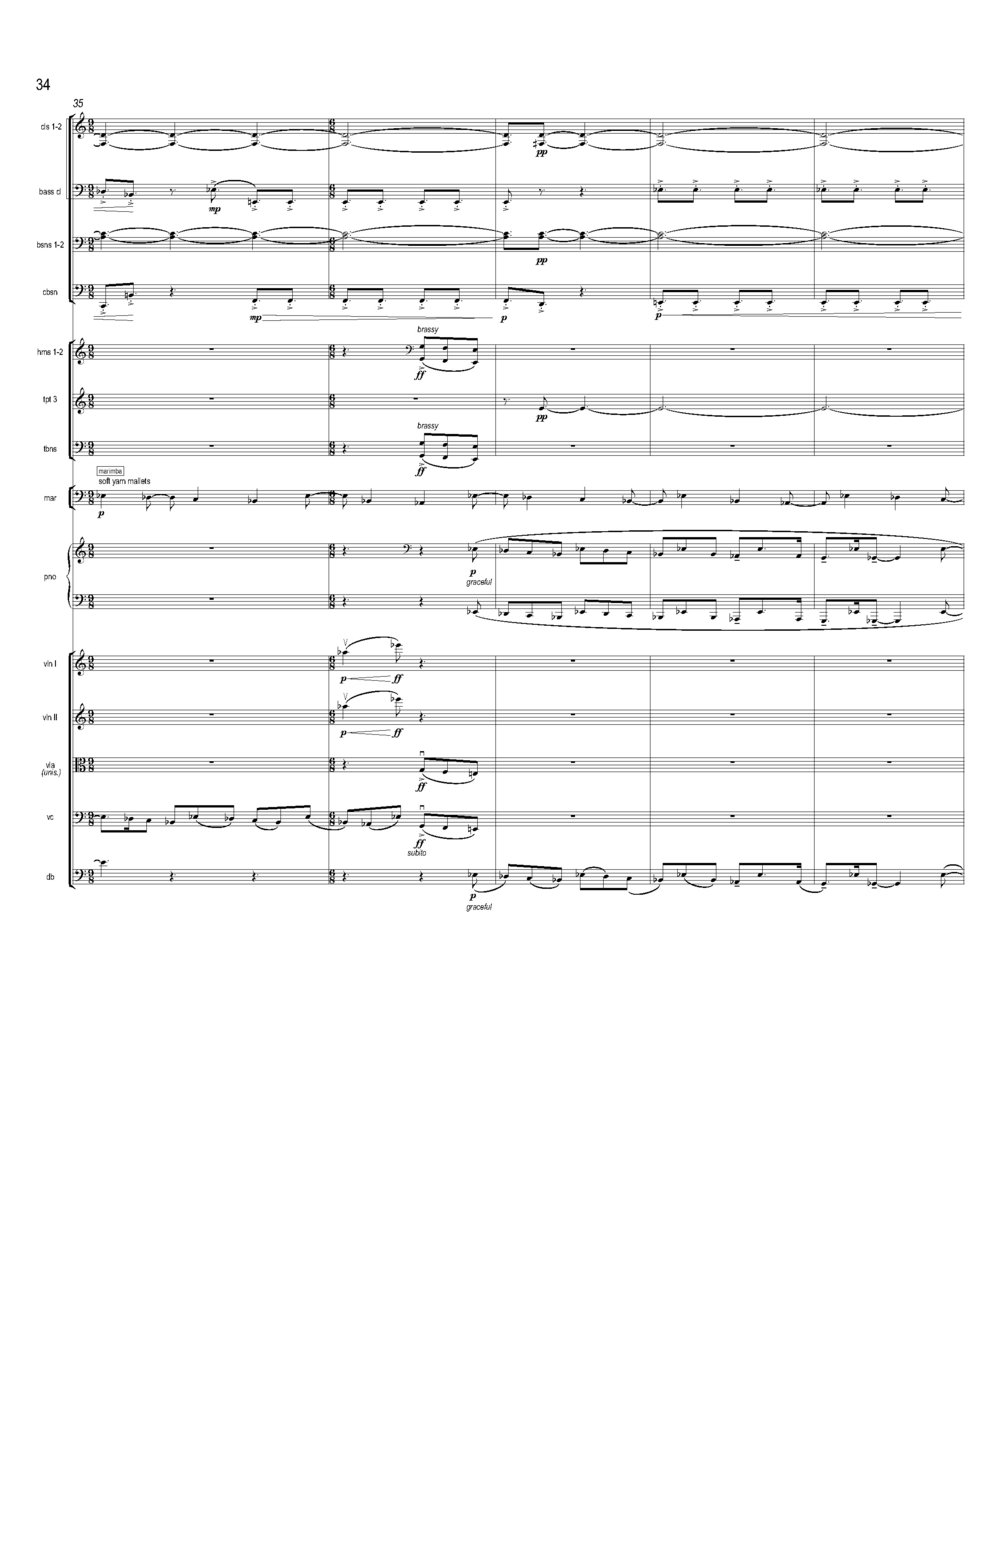 Ciach_Collective Uncommon REVISED_Full Score (Feb 2017)_Seite_40.jpg